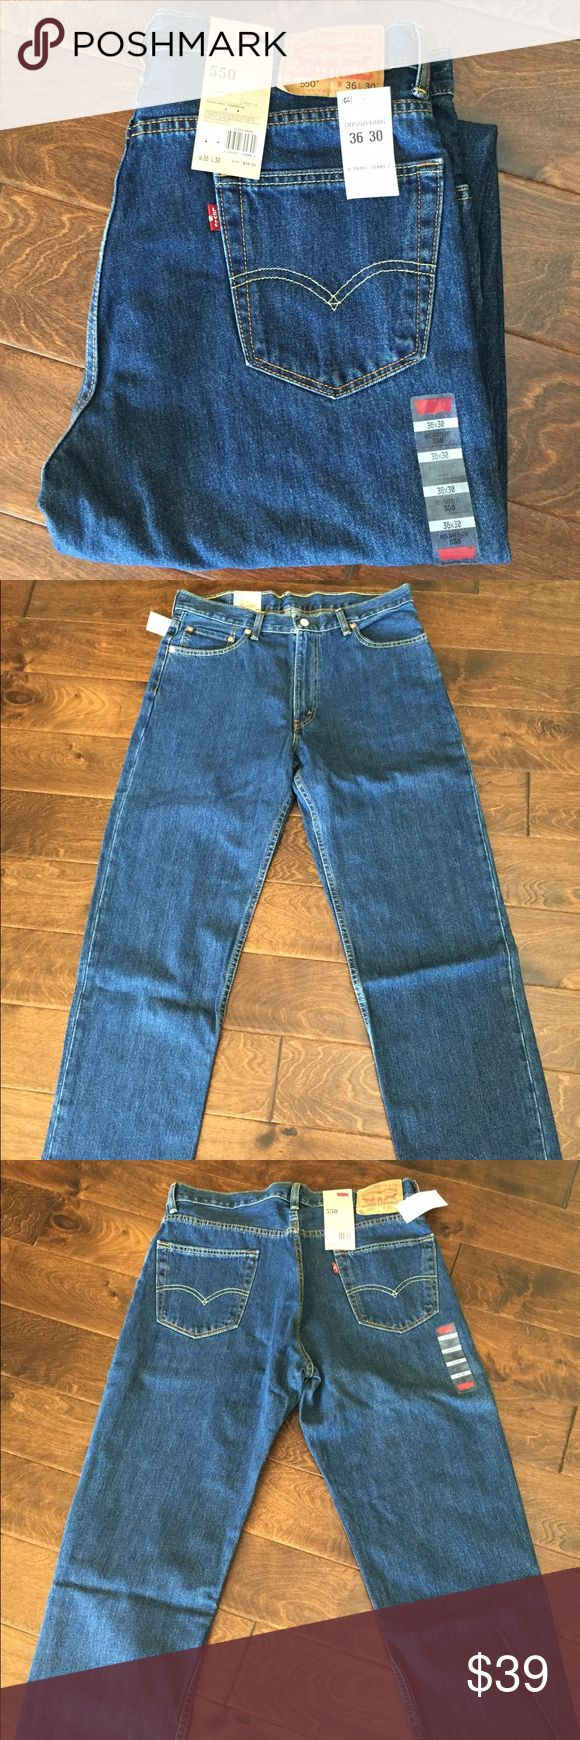 🇺🇸 NWT Men's Levi 550 Jeans Loose Fit 🇺🇸 🇺🇸 New with tags men's Levi's 550s. Size Loose fit. 36x30. Levi's Pants